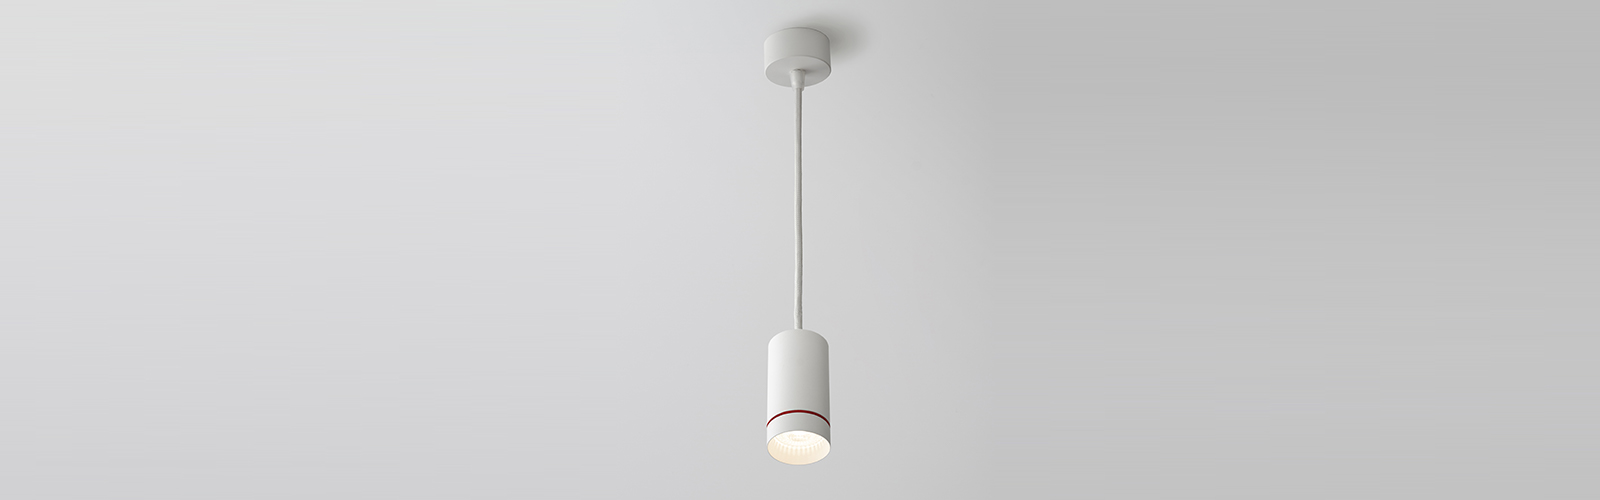 Fenos LED Lighting Pendant Aro P